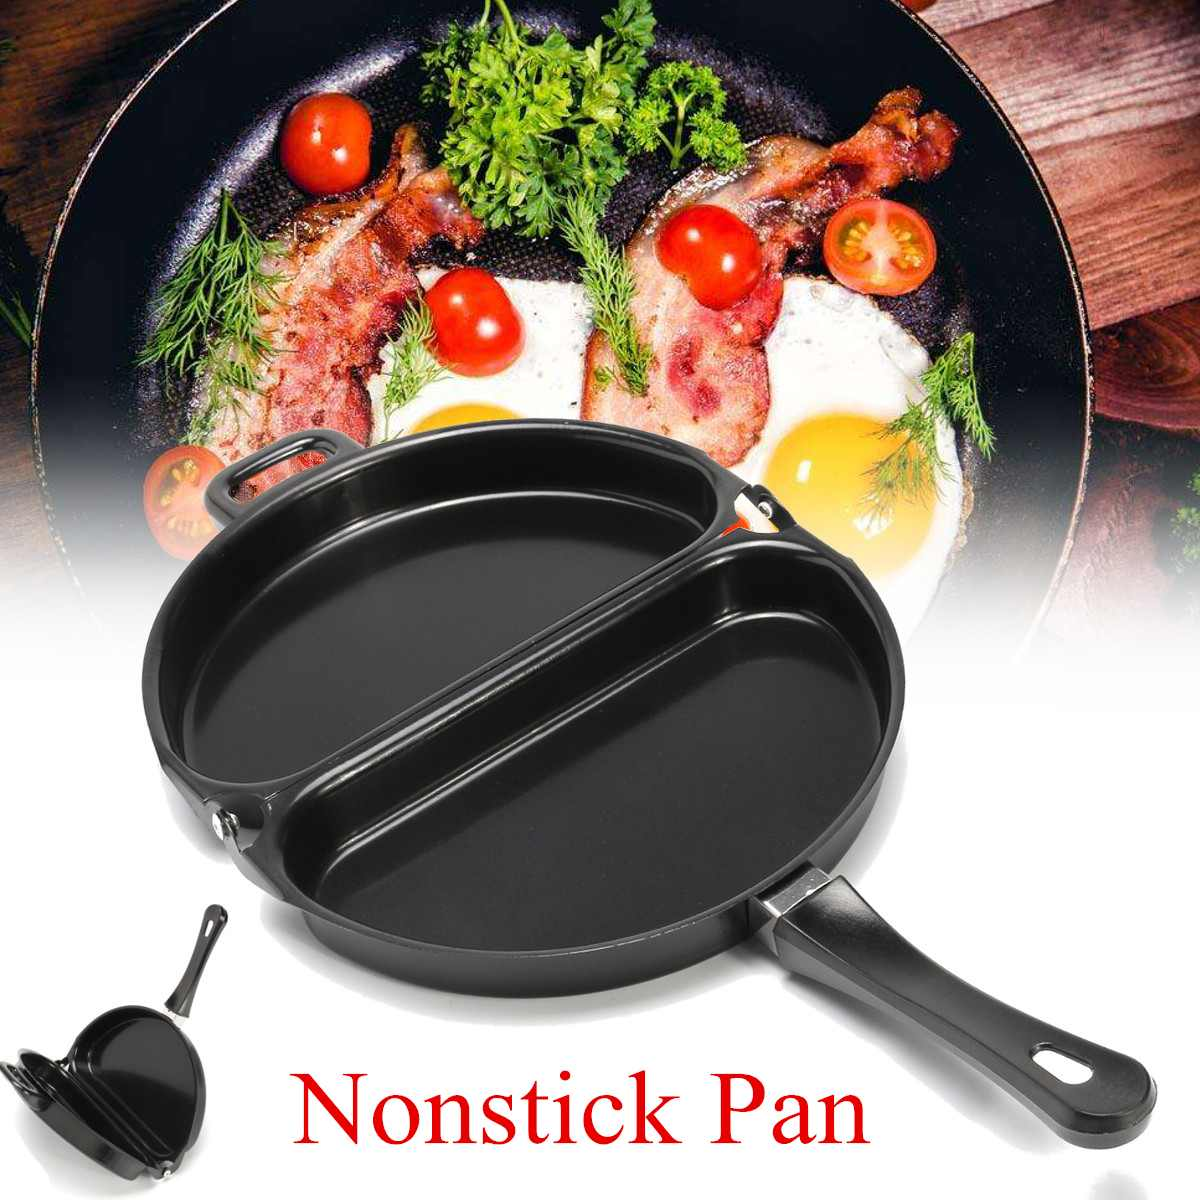 Double Side Non Stick Coated Omelet Pan Folding Pan Kitchen Breakfast Skillet Frying Pan Skillet Omelette Maker Cooking Tool